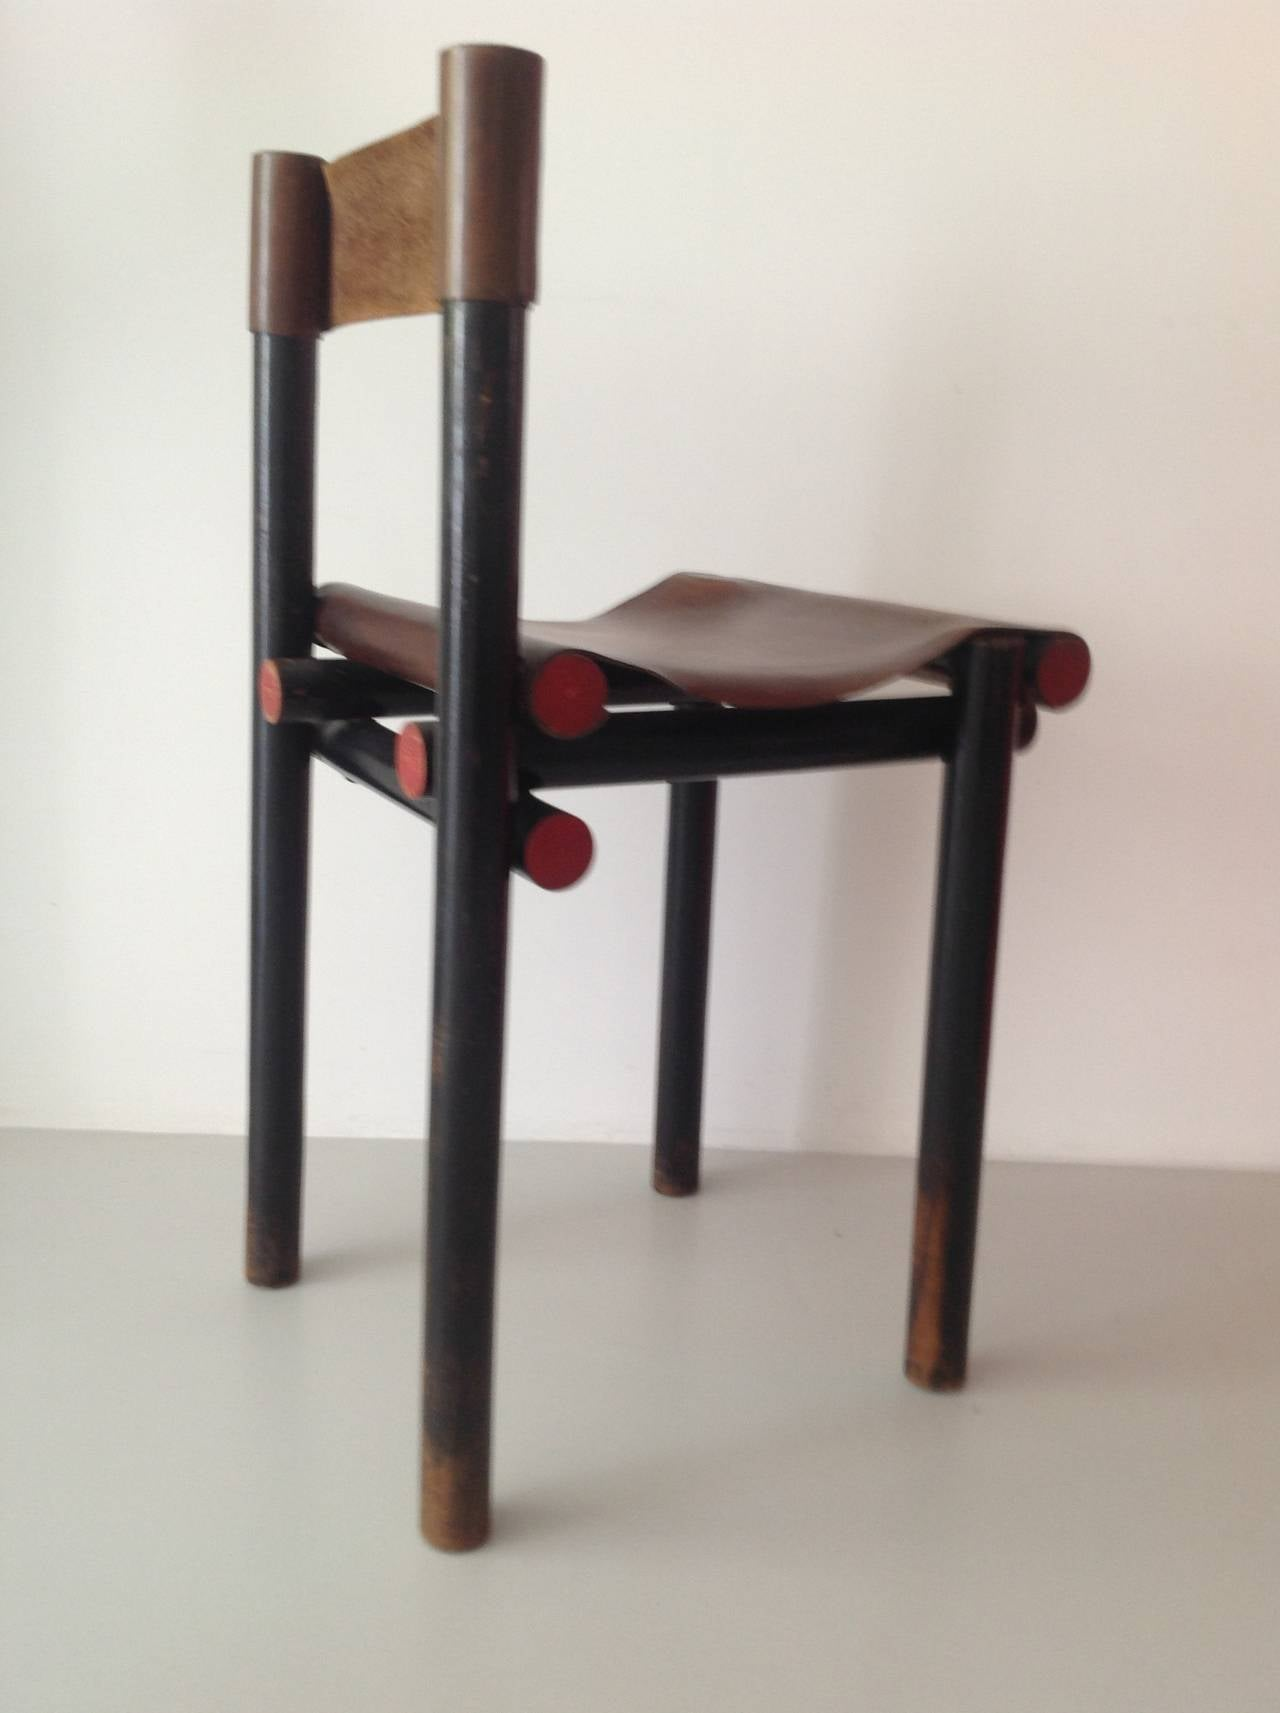 Piano Chair by Gerrit Rietveld De Stijl For Sale at 1stdibs